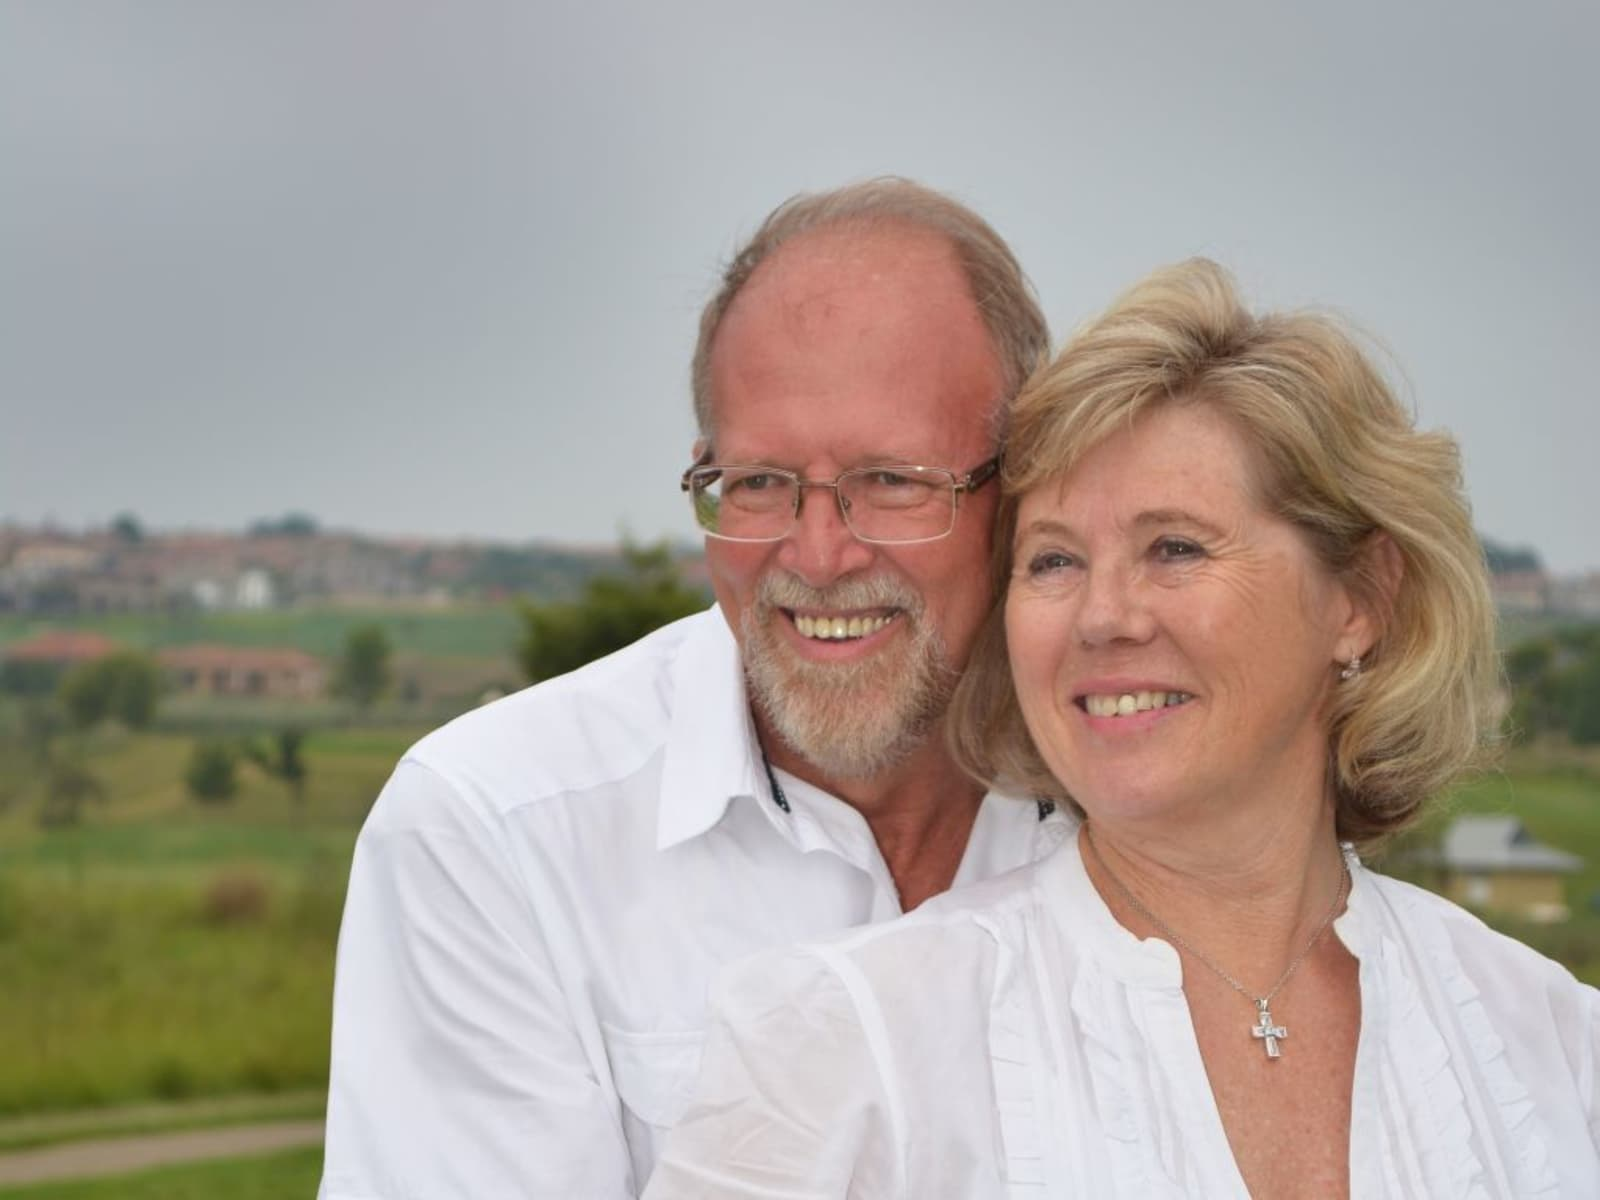 Frans & Dianne from Roodepoort, South Africa